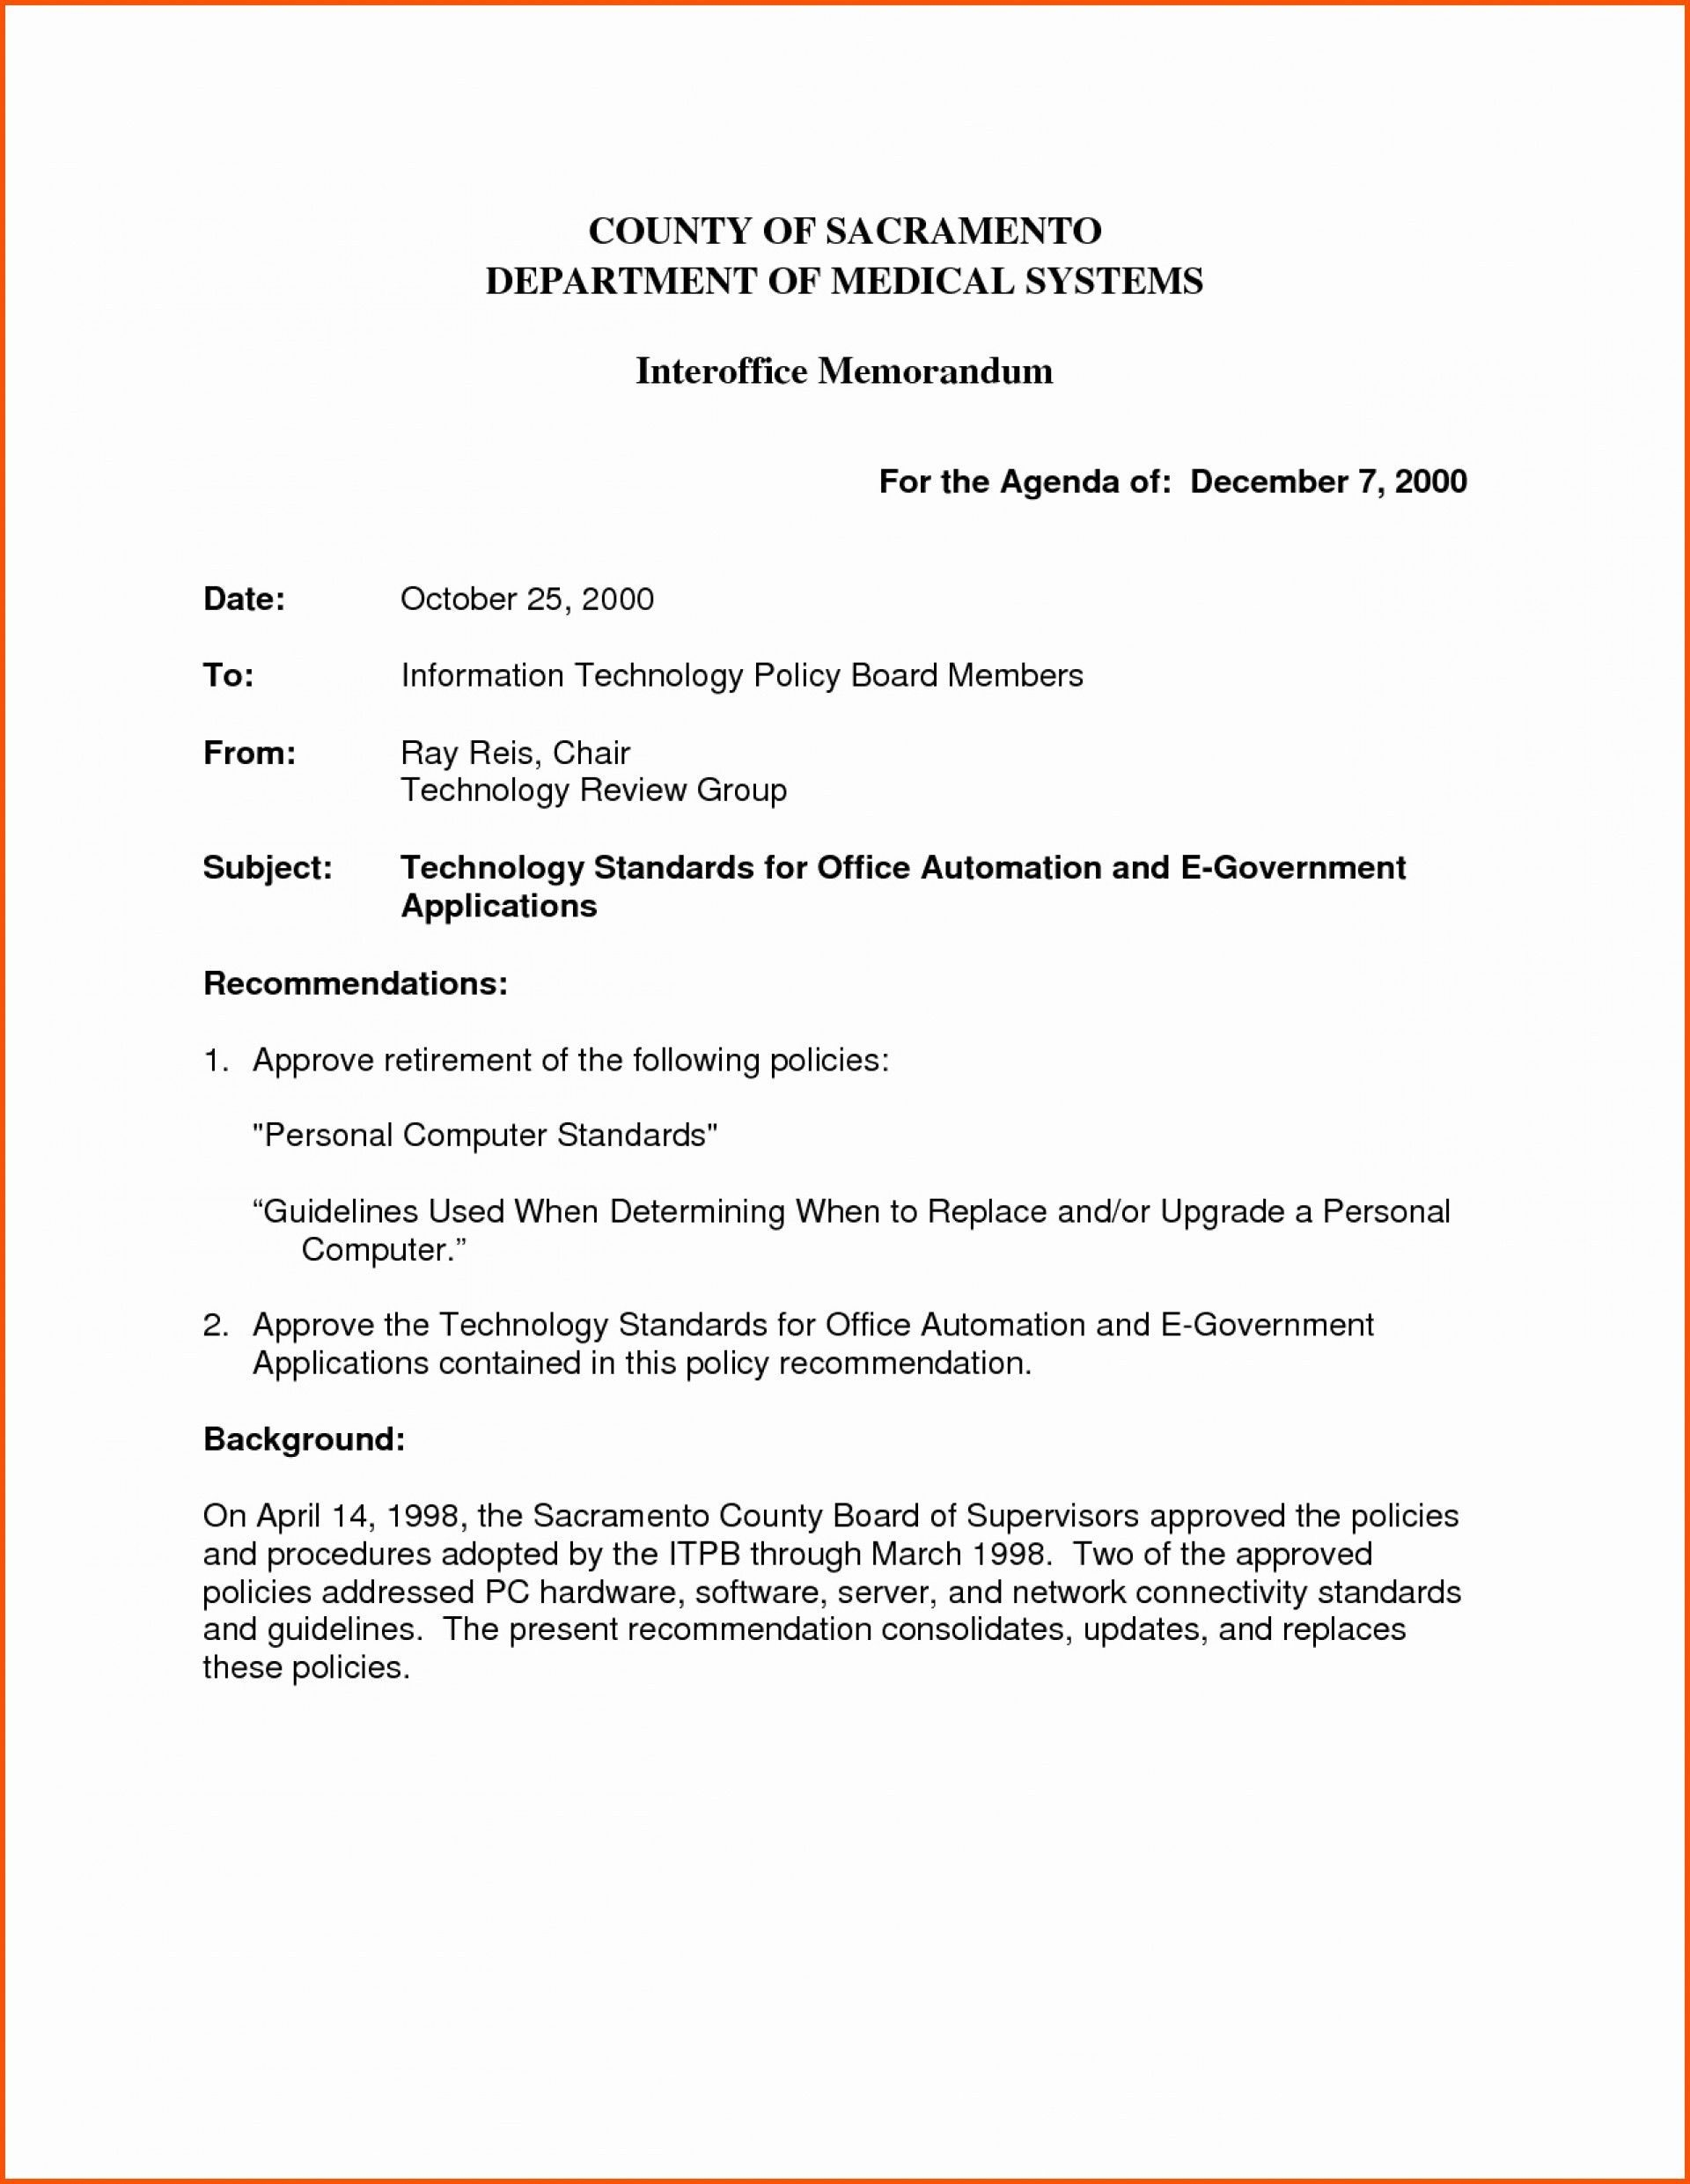 004 Surprising Microsoft Word Memo Template Free Inspiration  DownloadFull